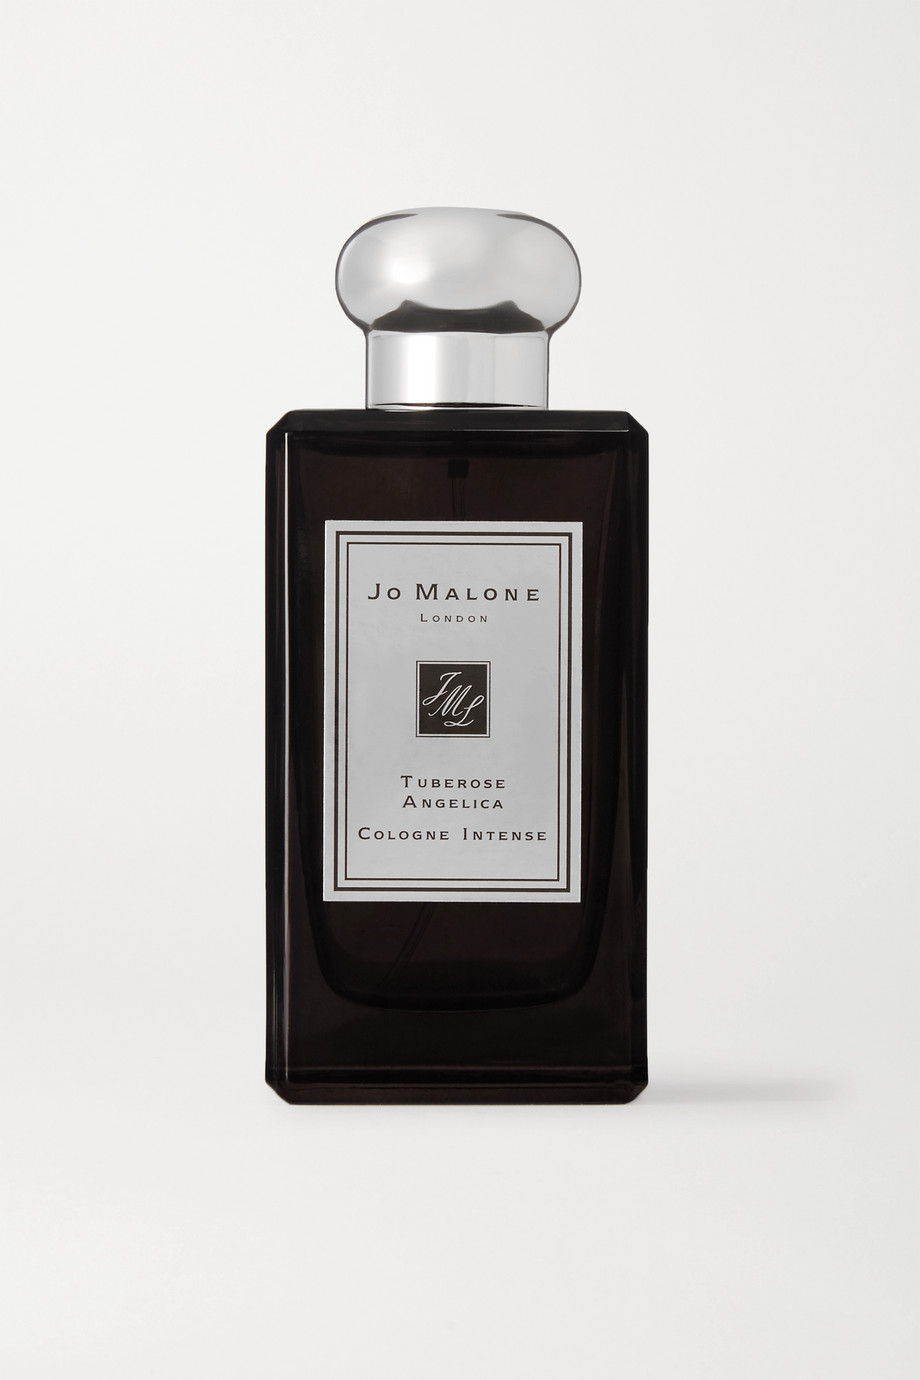 Jo Malone London Tuberose Angelica Cologne Intense, 100ml